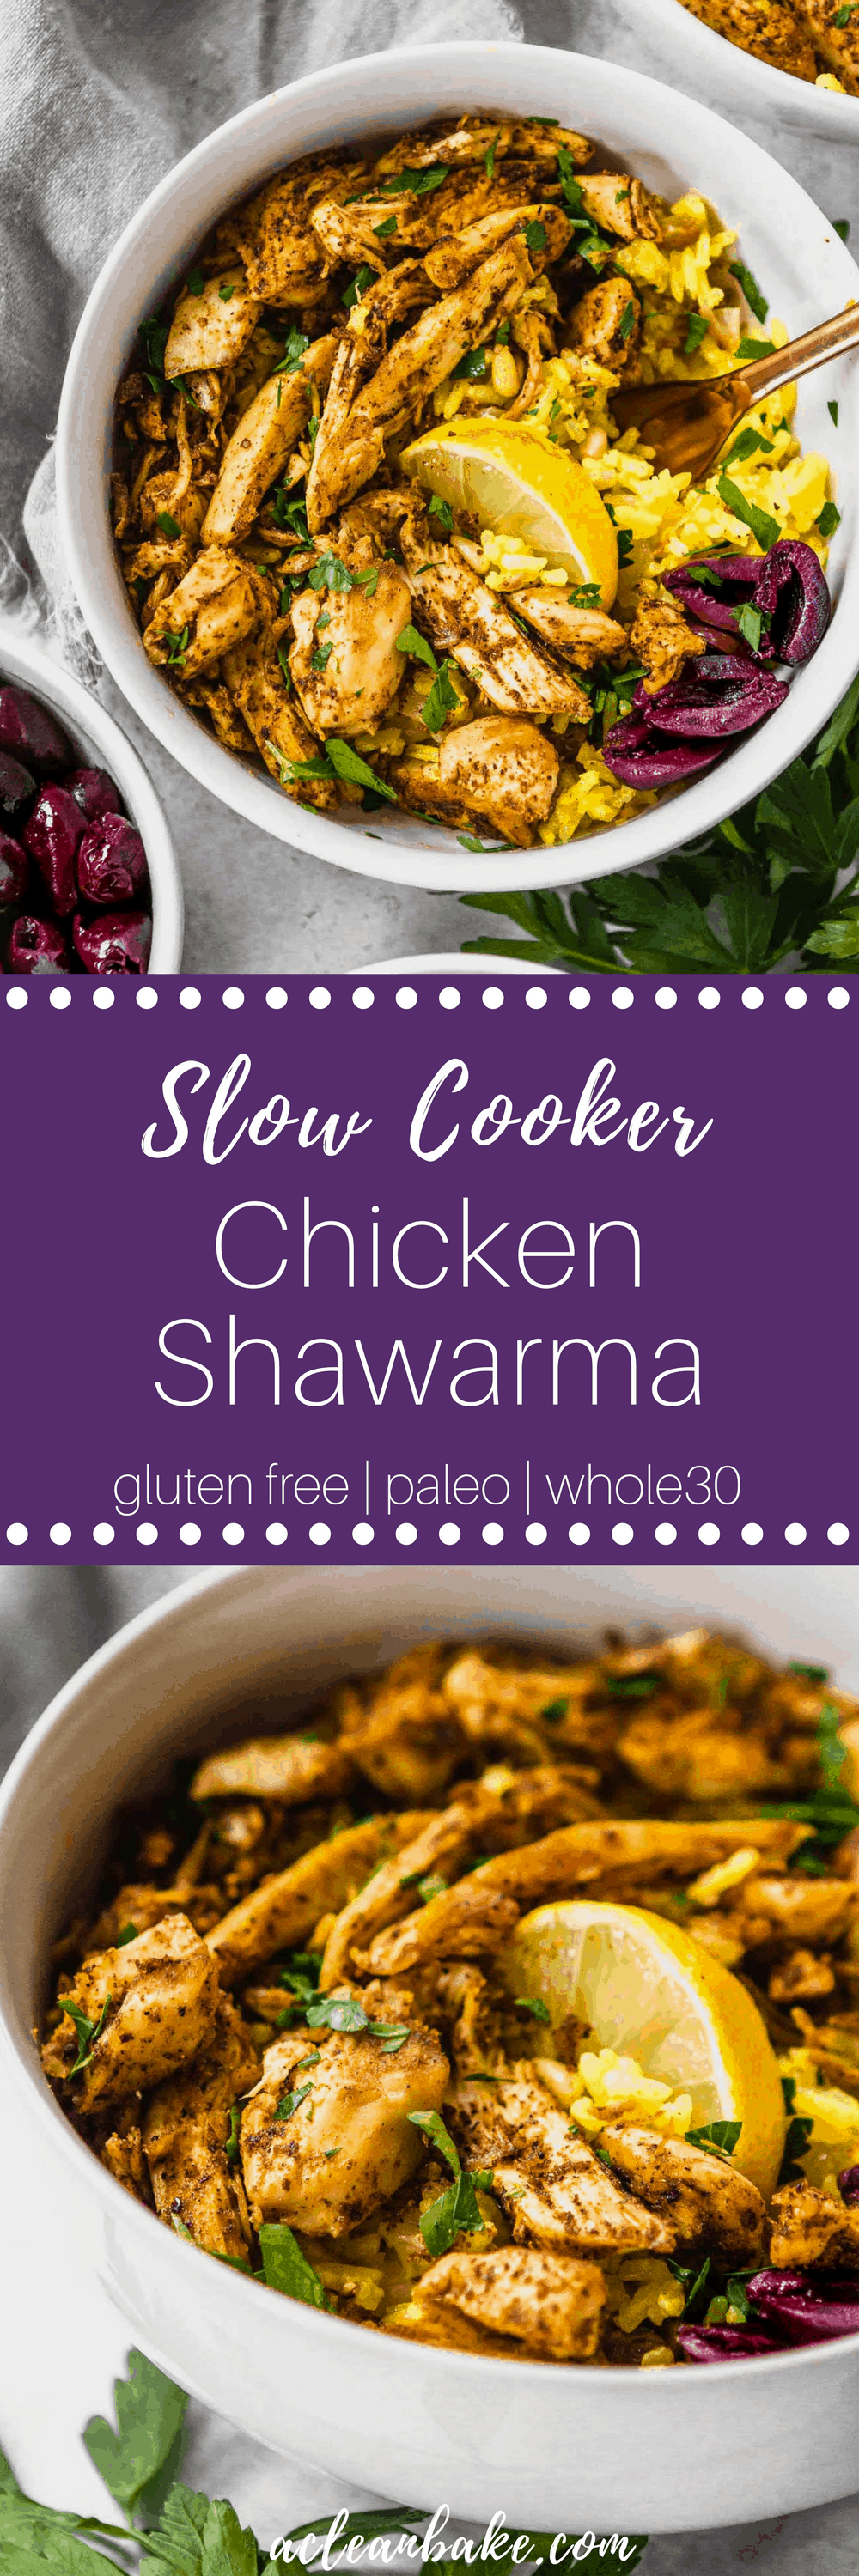 Slow cooker chicken shawarma combines the ease of a slow cooker meal with the complex flavor of a slow-roasted middle eastern chicken feast! Various serving options make this sensational #paleo and #glutenfree #dinner #recipe adaptable for #lowcarb and #Whole30 compliance, too! #easydinner #easydinnerrecipe #healthydinner #healthydinnerrecipe #paleodinner #paleodinnerideas #glutenfreedinner #glutenfreedinneridea #dairyfree #lowcarbdinner #whole30dinner